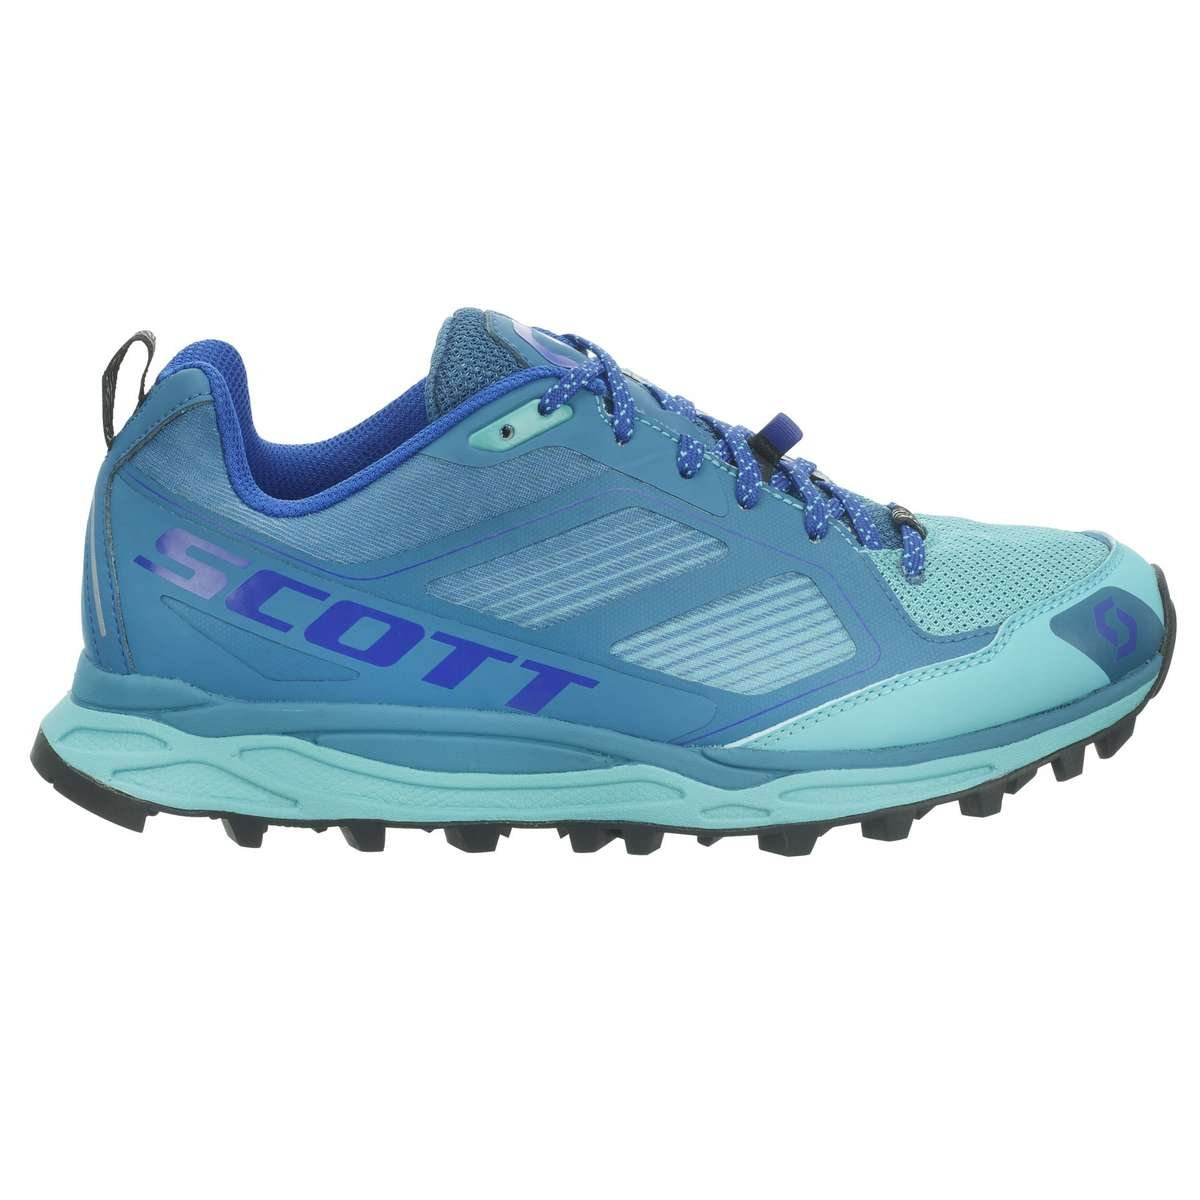 reputable site 26266 5e0fc Scott Kinabalu Supertrac Women/Blue/Green/UK 6.5: Amazon.co ...